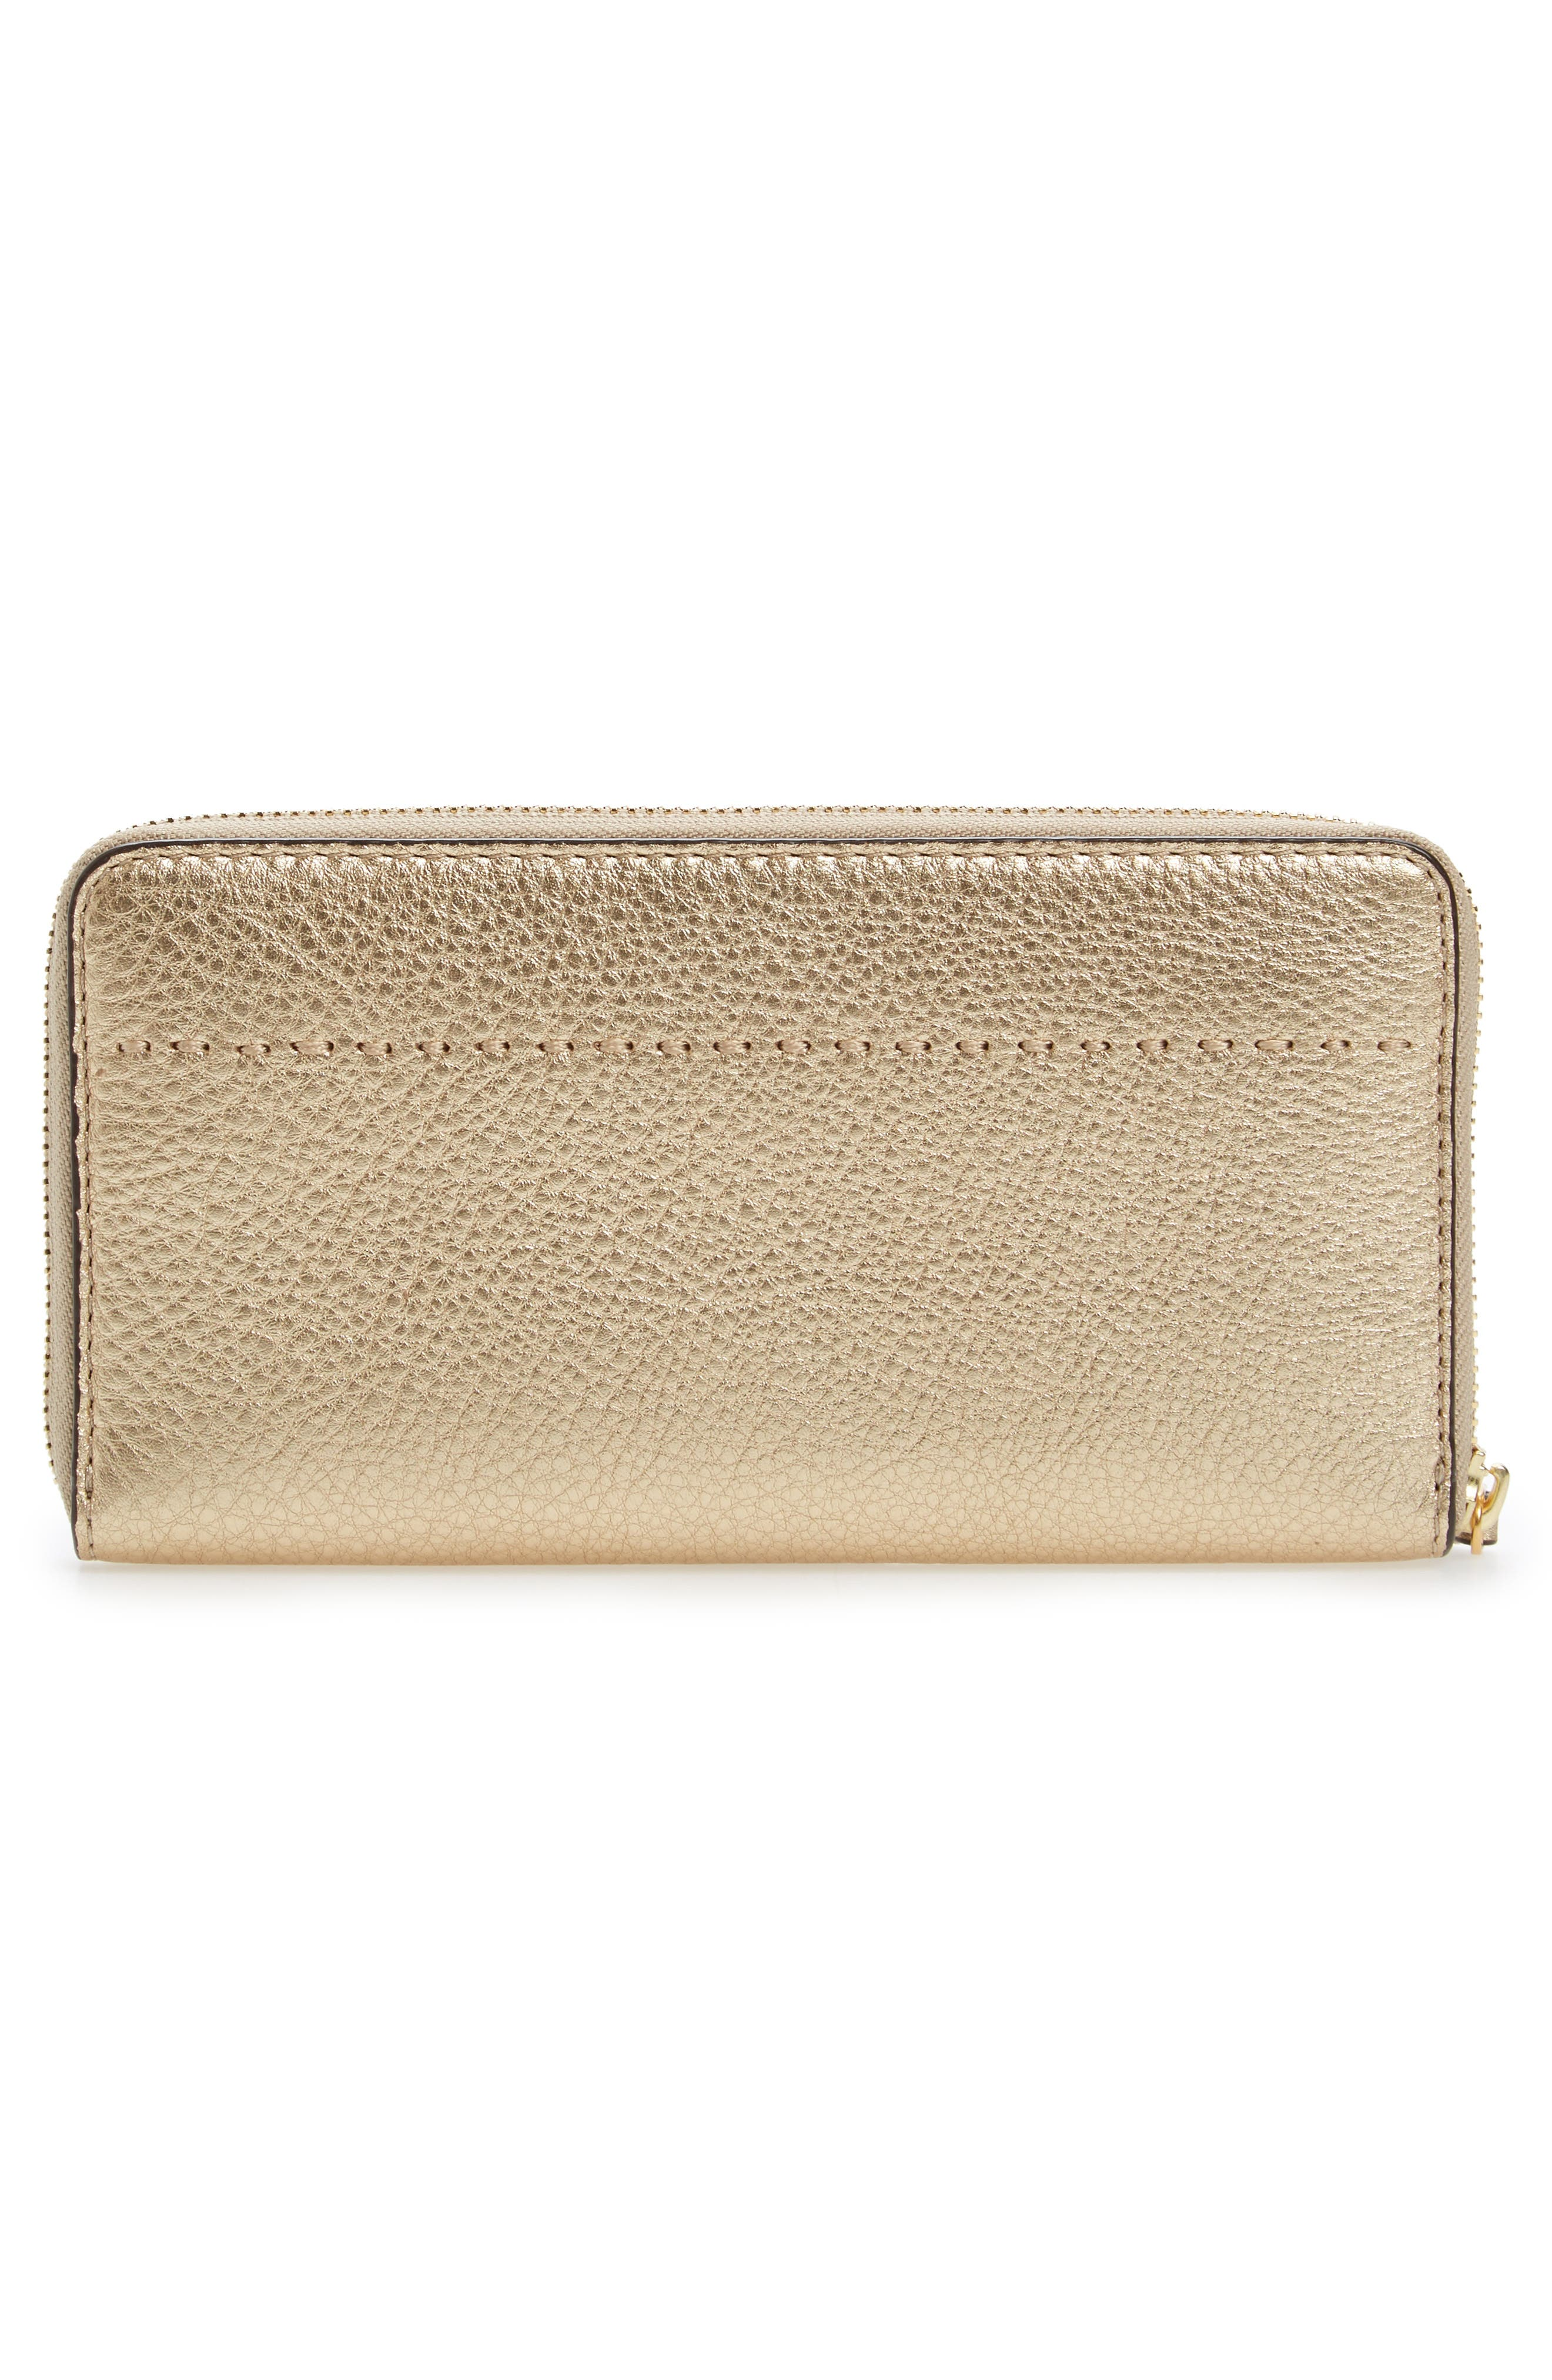 McGraw Leather Continental Wallet,                             Alternate thumbnail 4, color,                             Gold